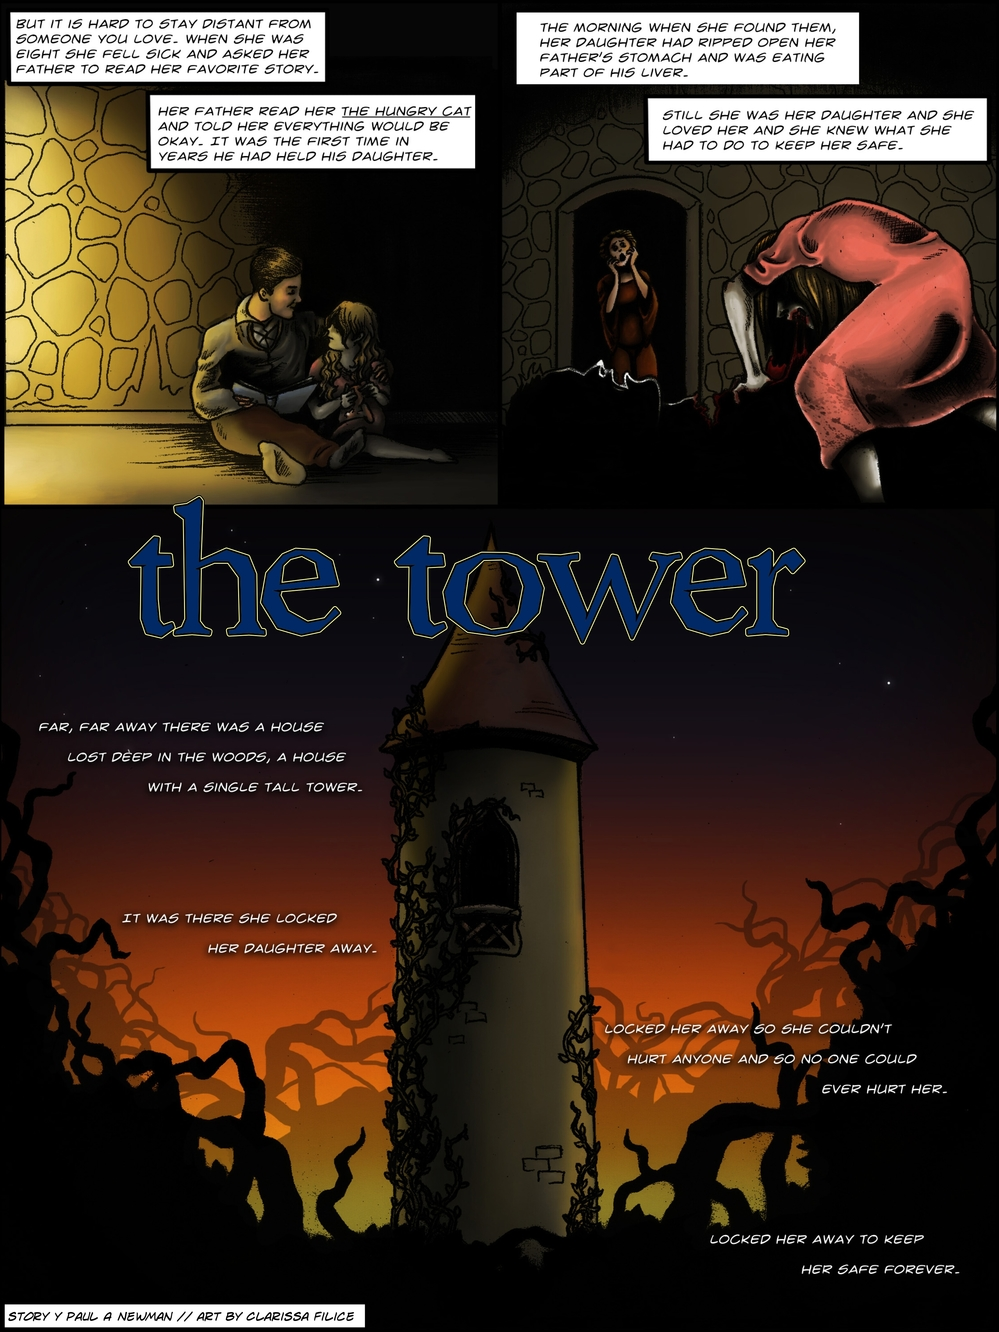 THE TOWER page 2 - story 1 in The Book of Lies